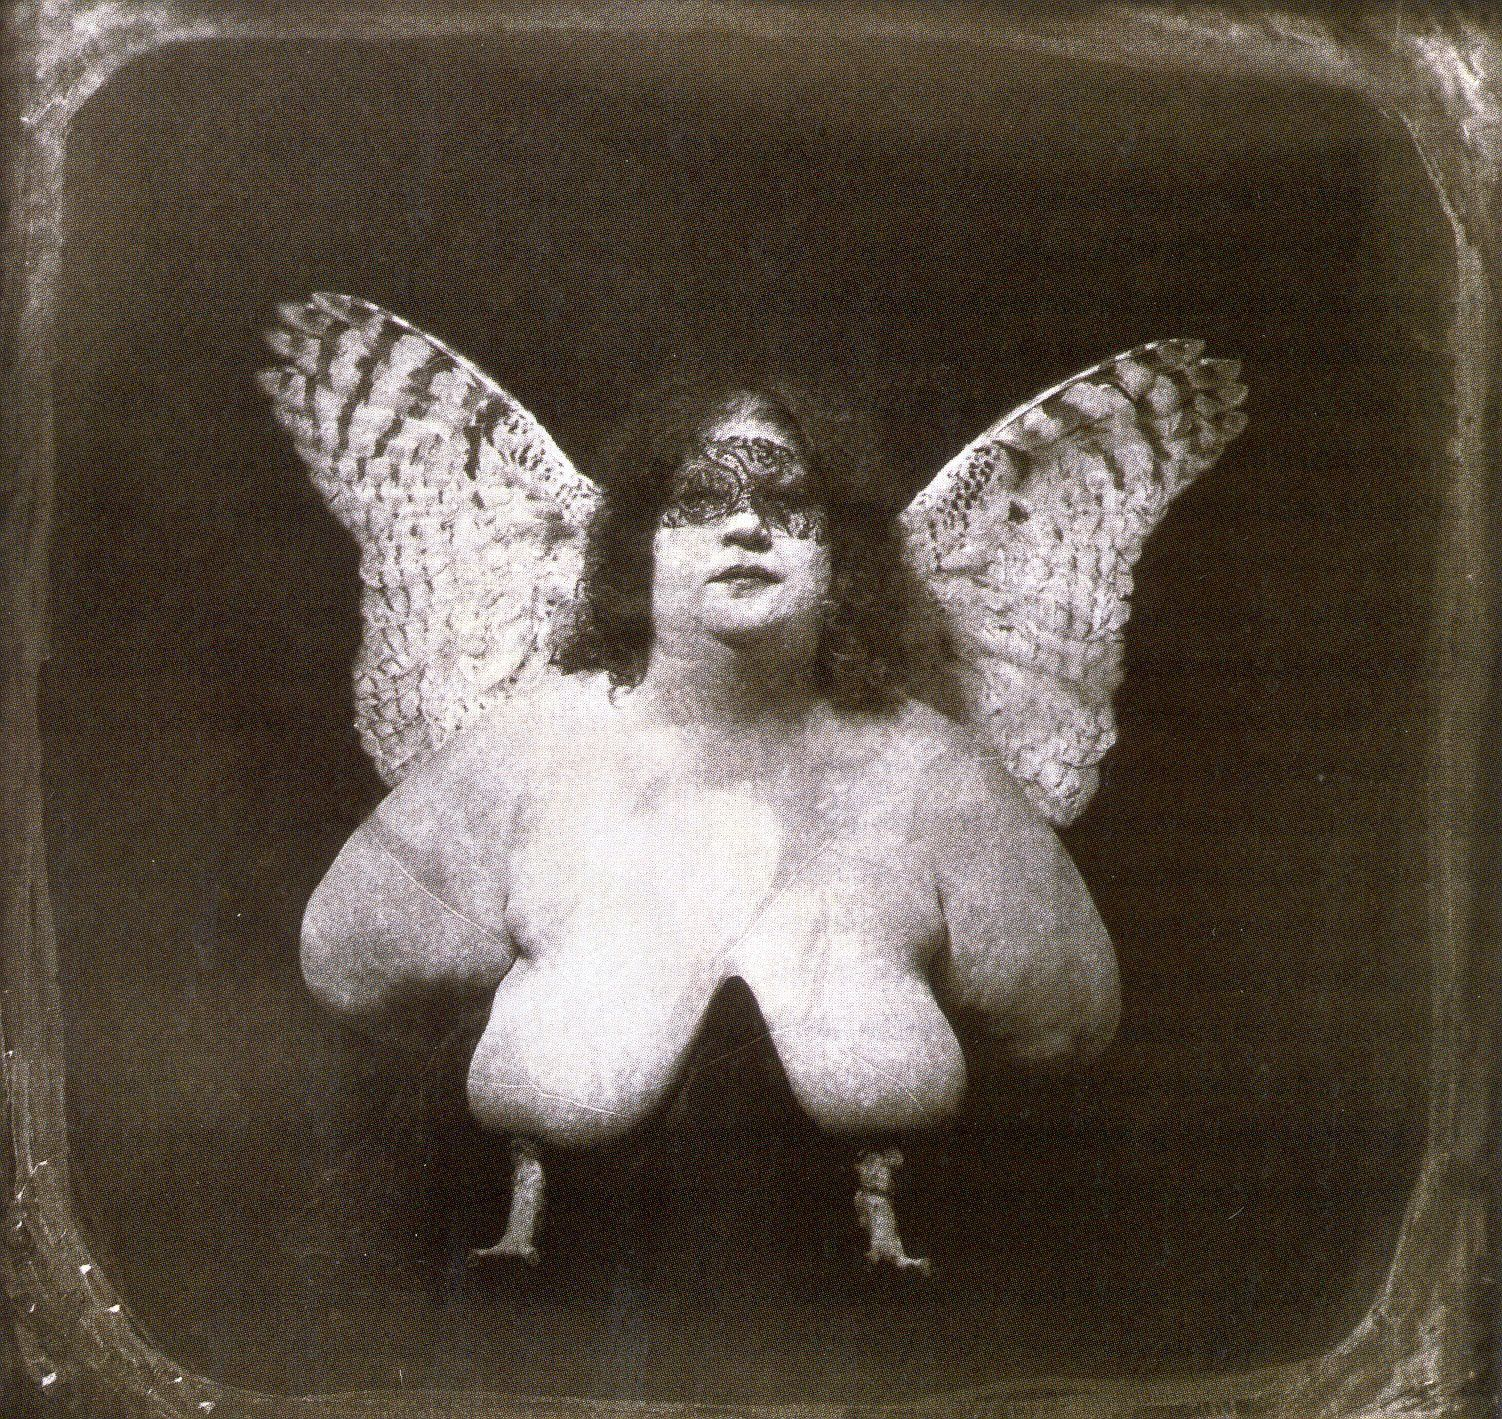 Joël Peter Witkin.The bird of Quevada,Chimère.1982,tirage argentique,71x71cm.